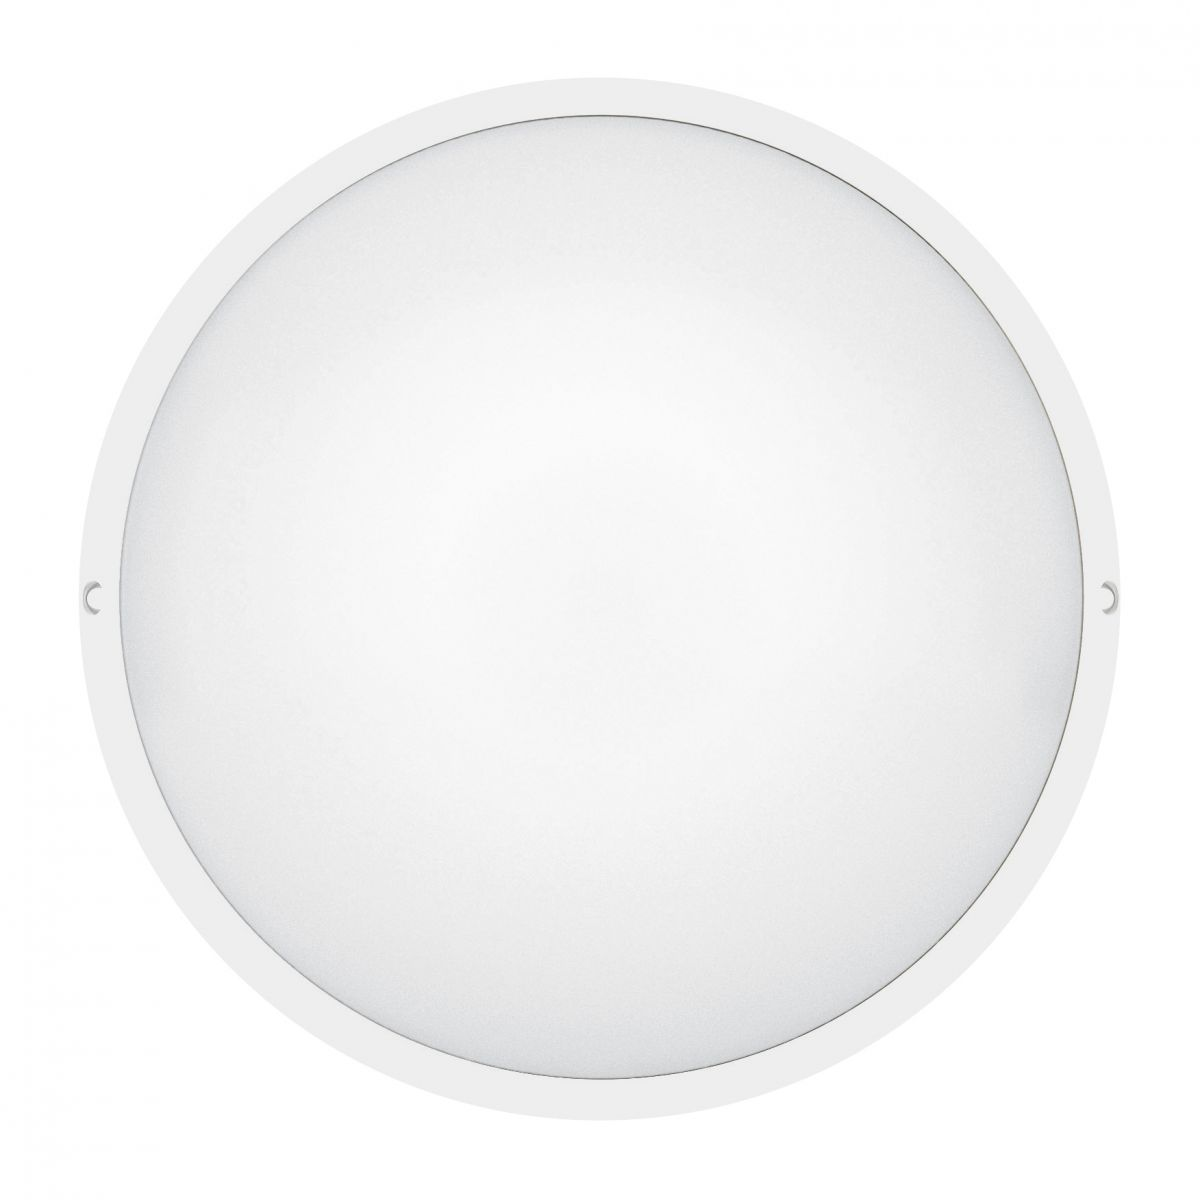 SL - Astreo LED 1400lm Detectie HF 330mm ST wit